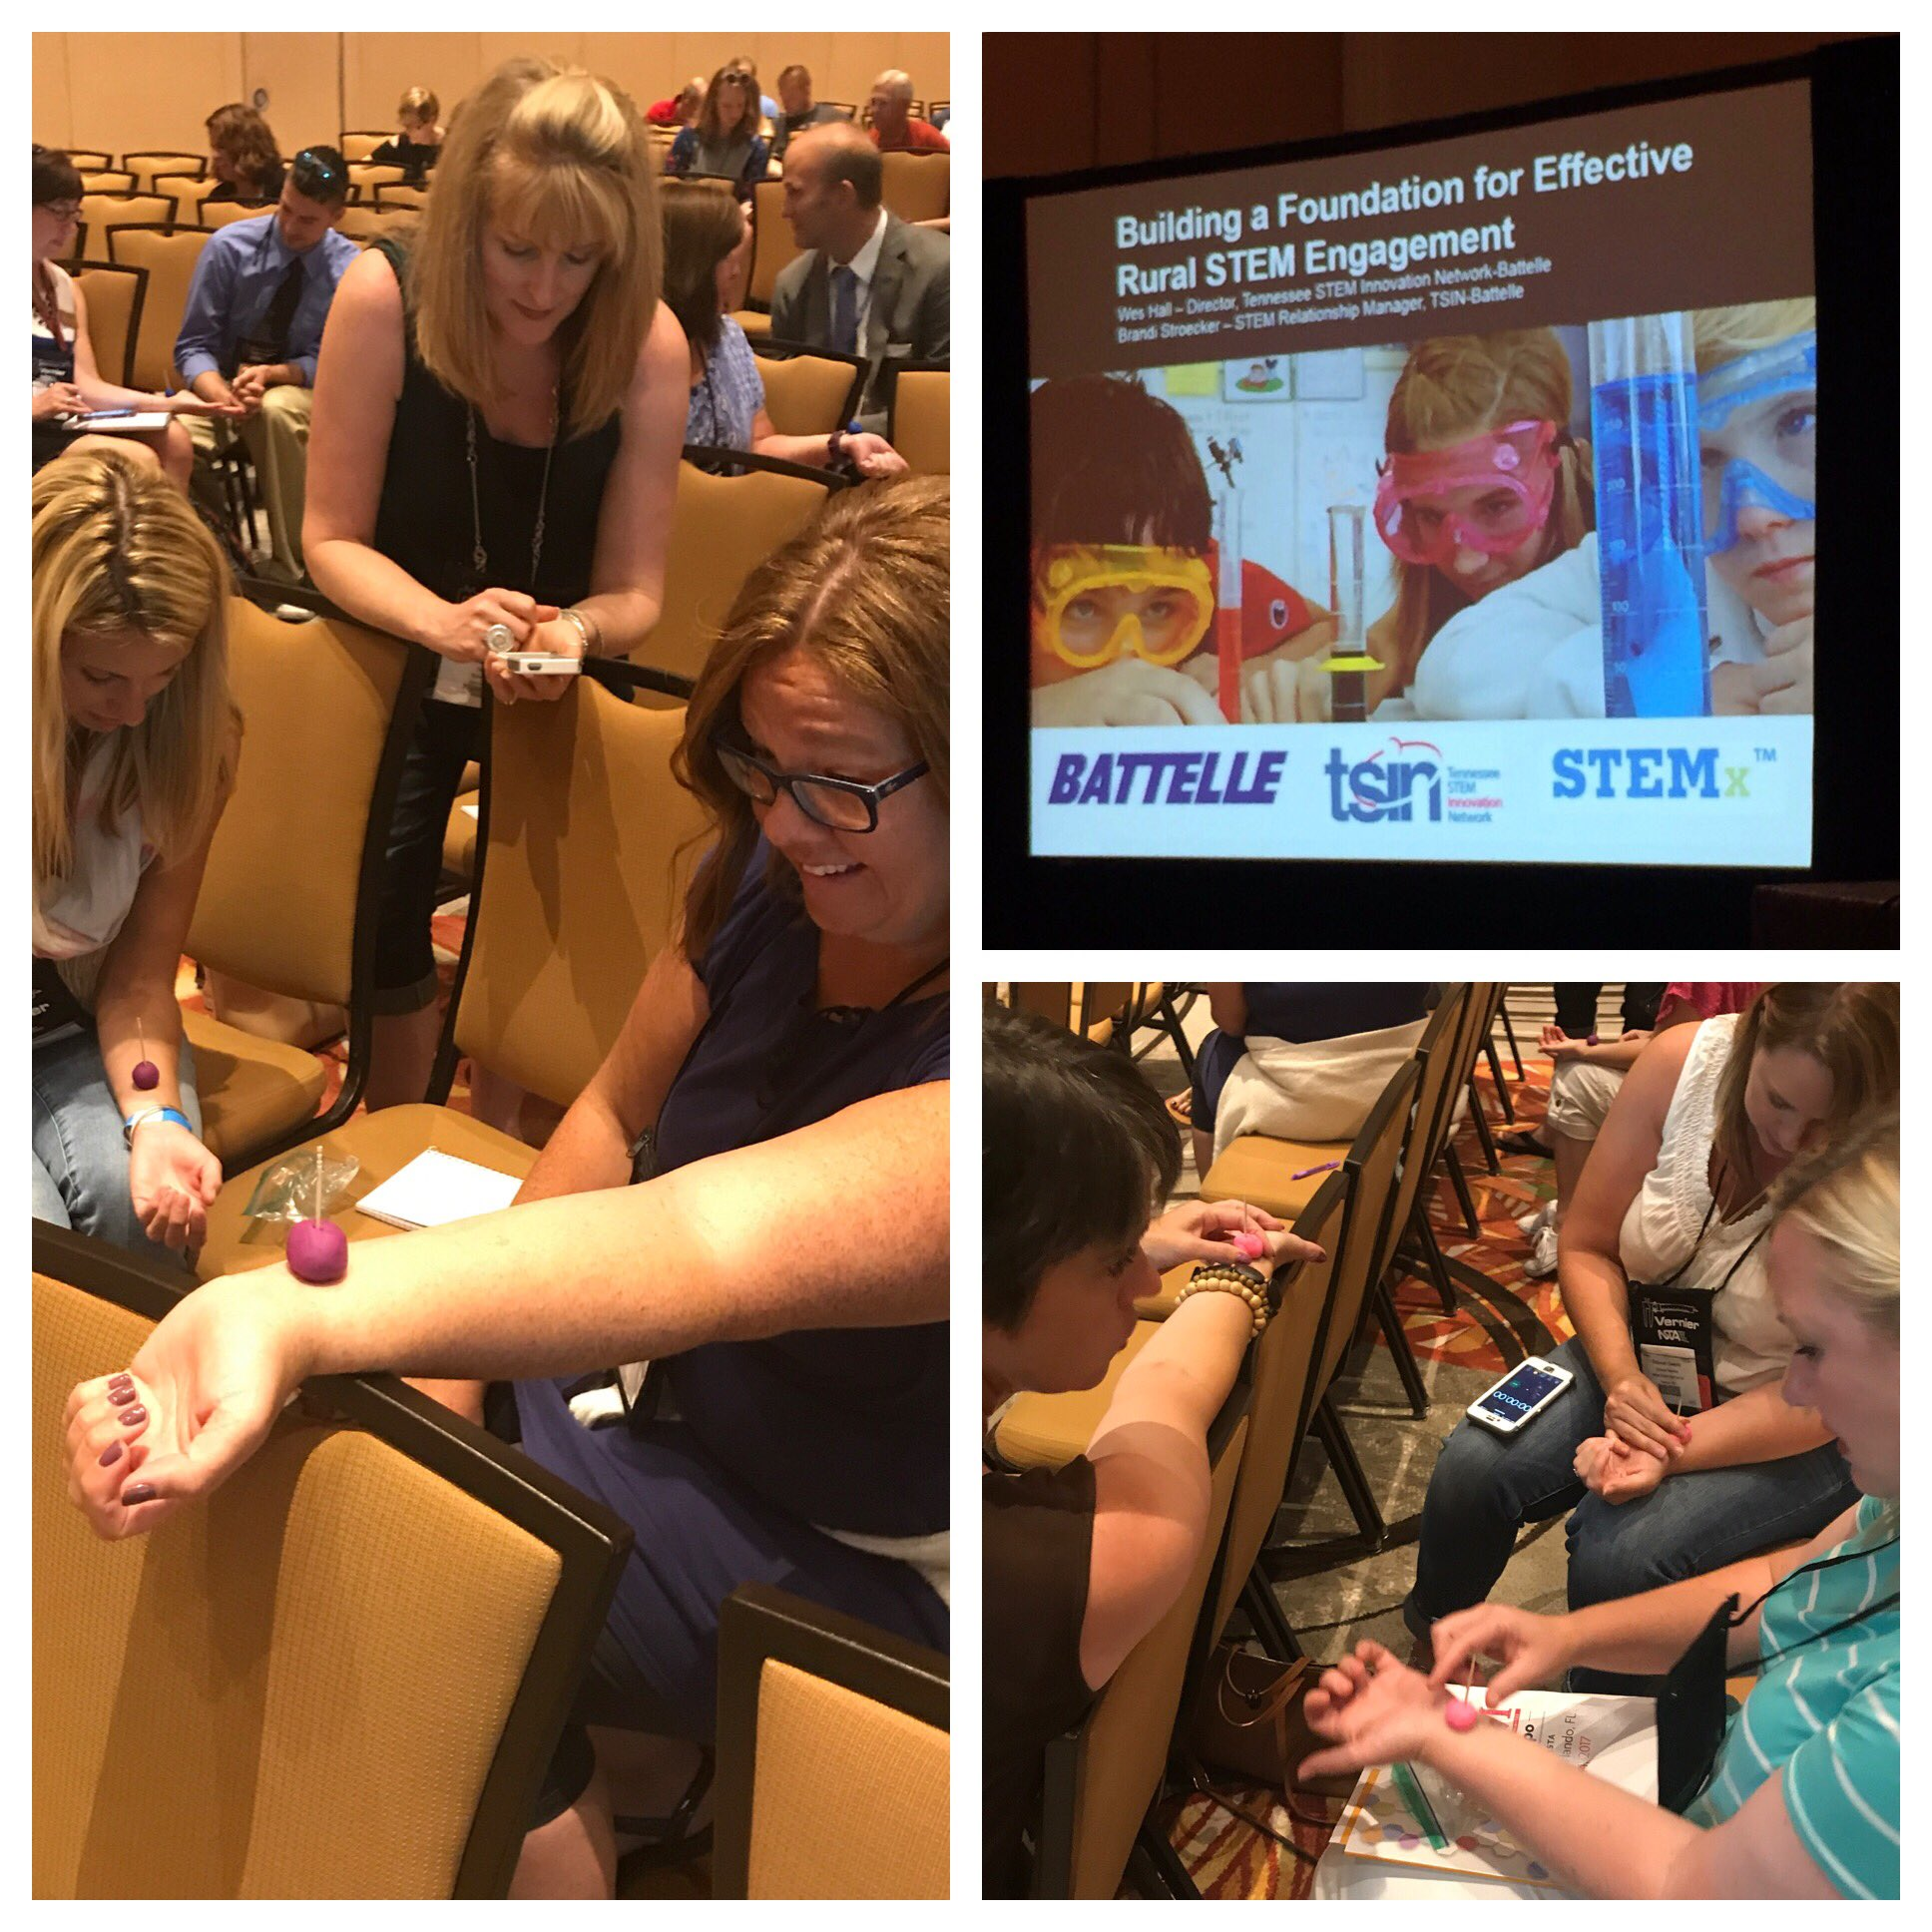 We had a blast sharing how @LearningBlade fits into our rural #STEM strategy and demonstrating a hands-on pulse lesson! #STEMforum @NSTA https://t.co/jCO7R30OA2